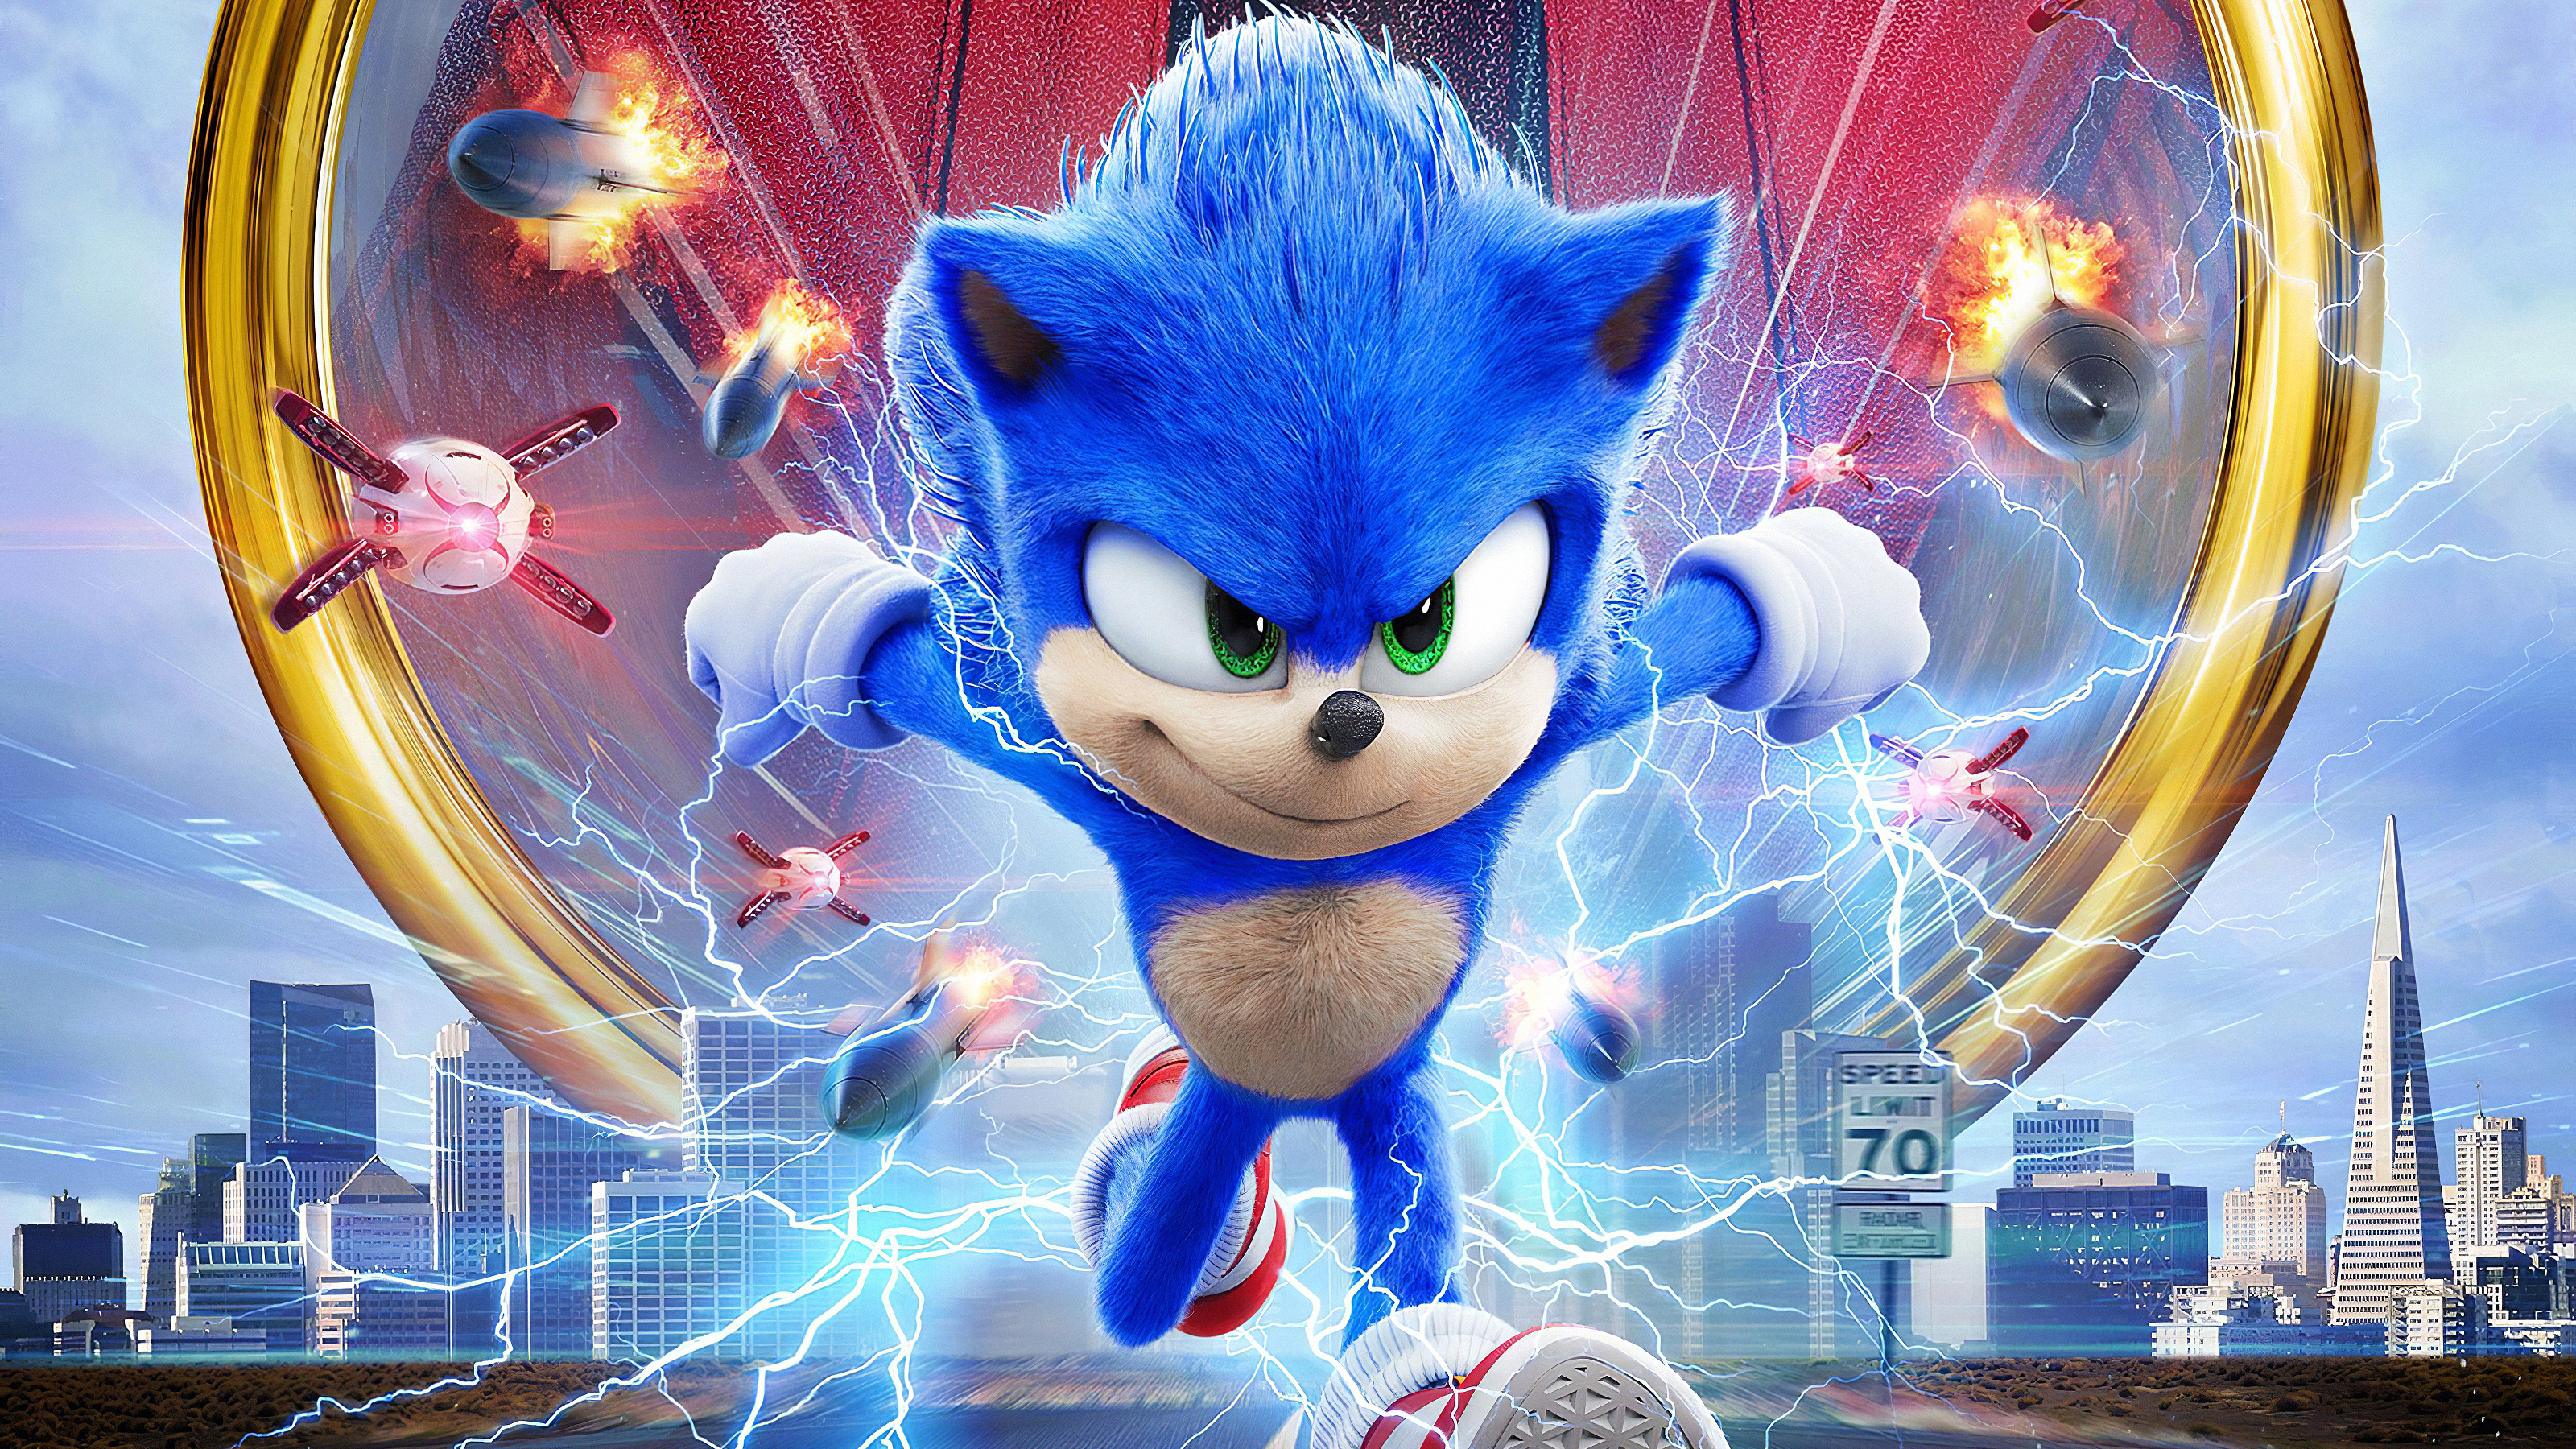 Sonic The Hedgehog 2020 Movie Hd Movies 4k Wallpapers Images Backgrounds Photos And Pictures